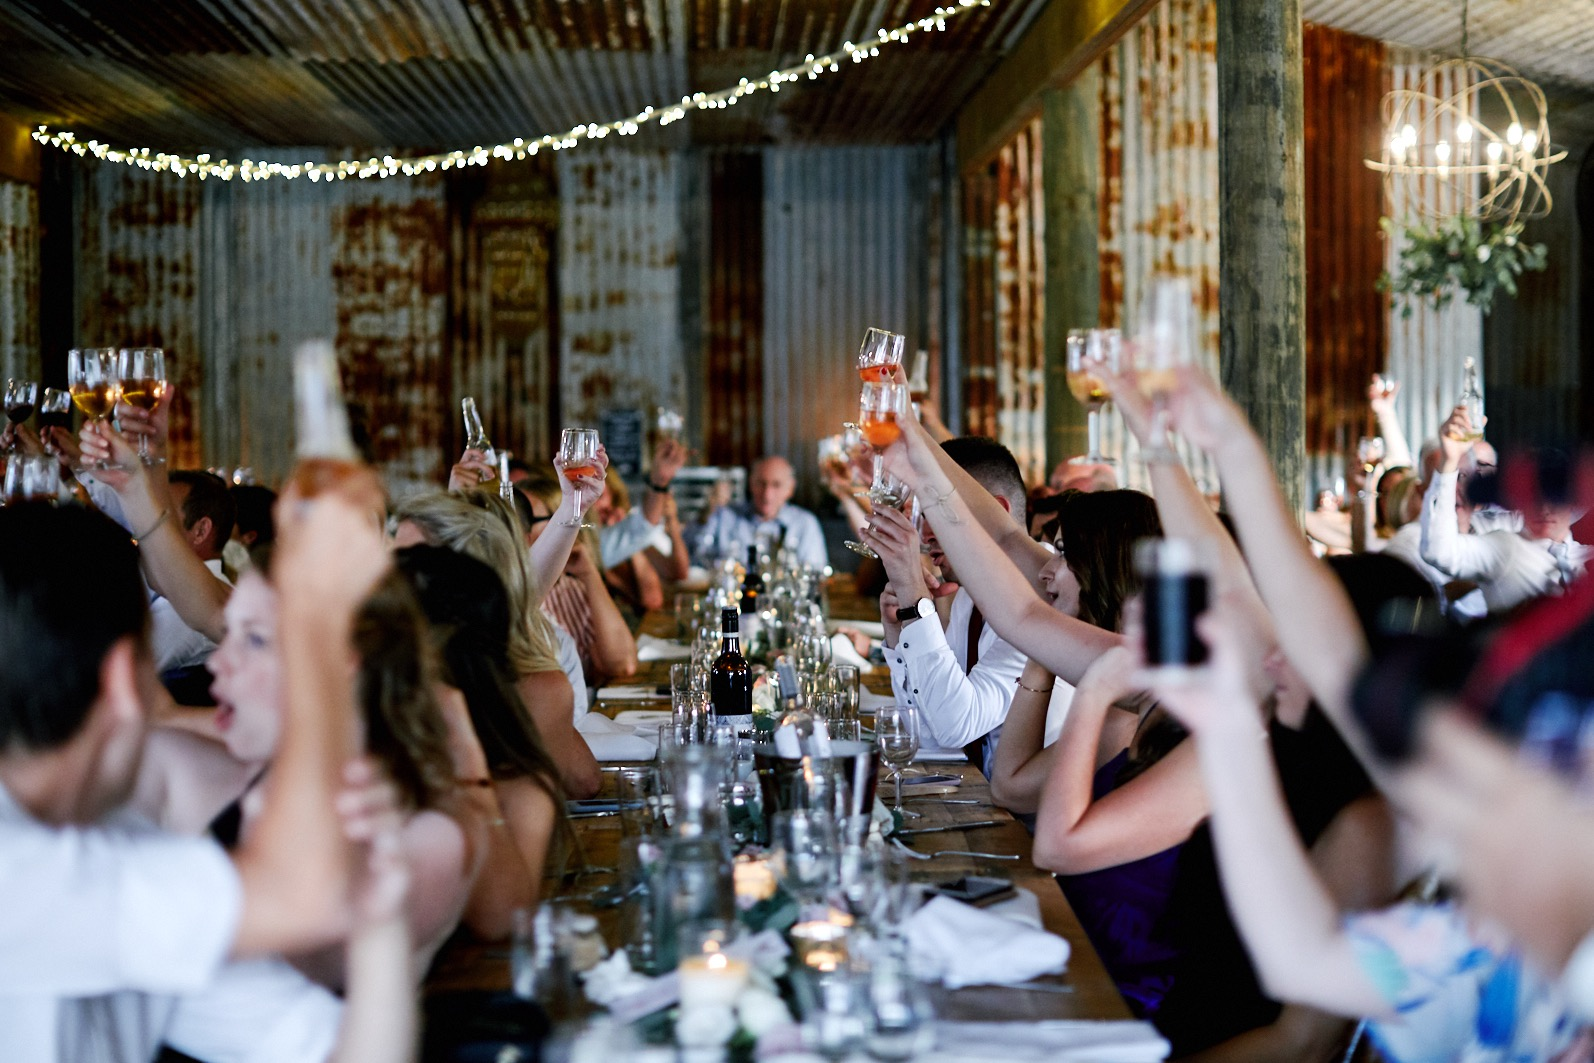 Guests toasting their drinks at The Stables of Somersby barn wedding venue. Rustic wedding venue.